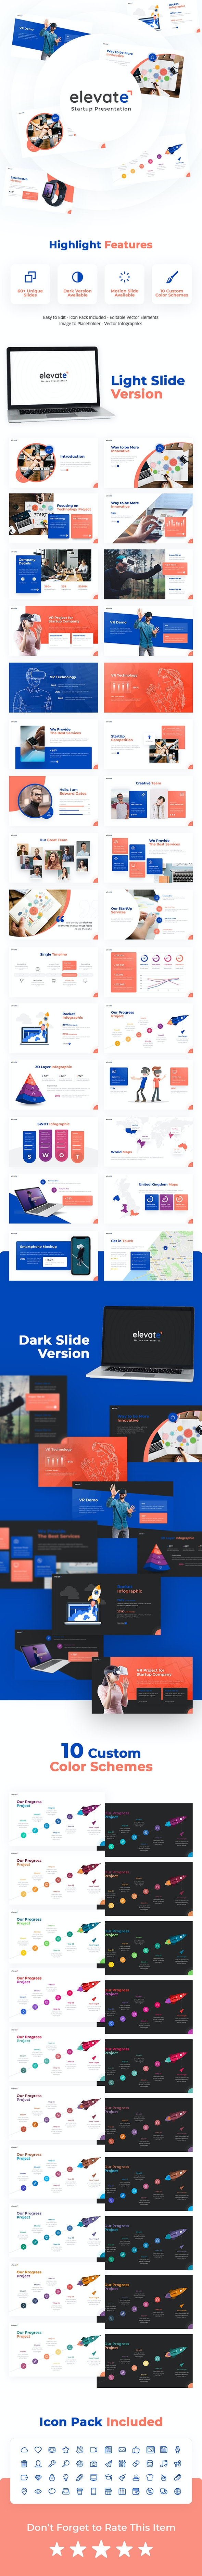 Elevate - Creative Startup PowerPoint Template - PowerPoint Templates Presentation Templates